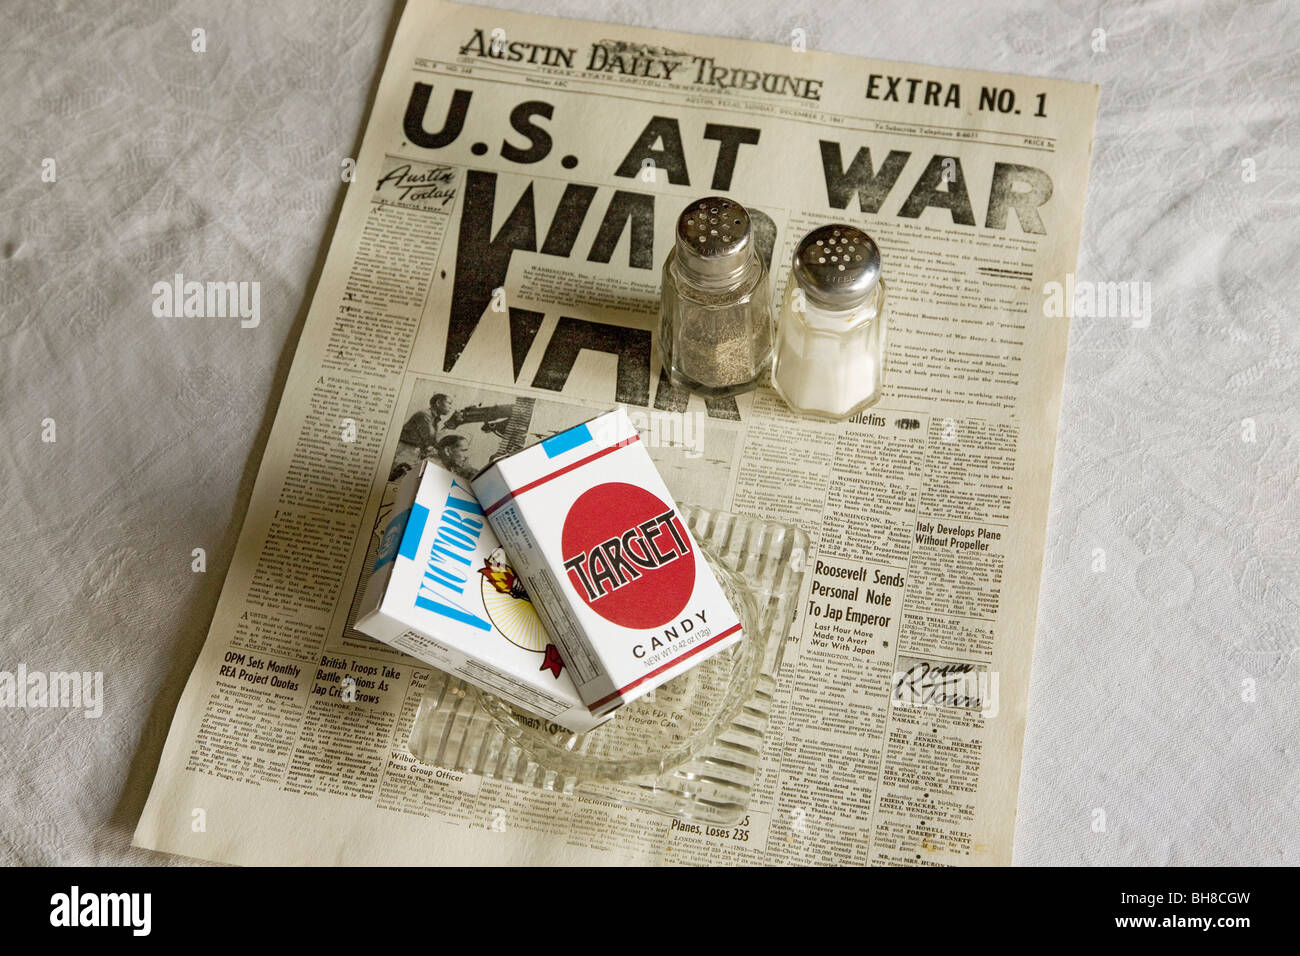 Still life of Austin Daily Tribune headline reading US AT WAR with Target candy cigarettes and salt and pepper shakers - Stock Image